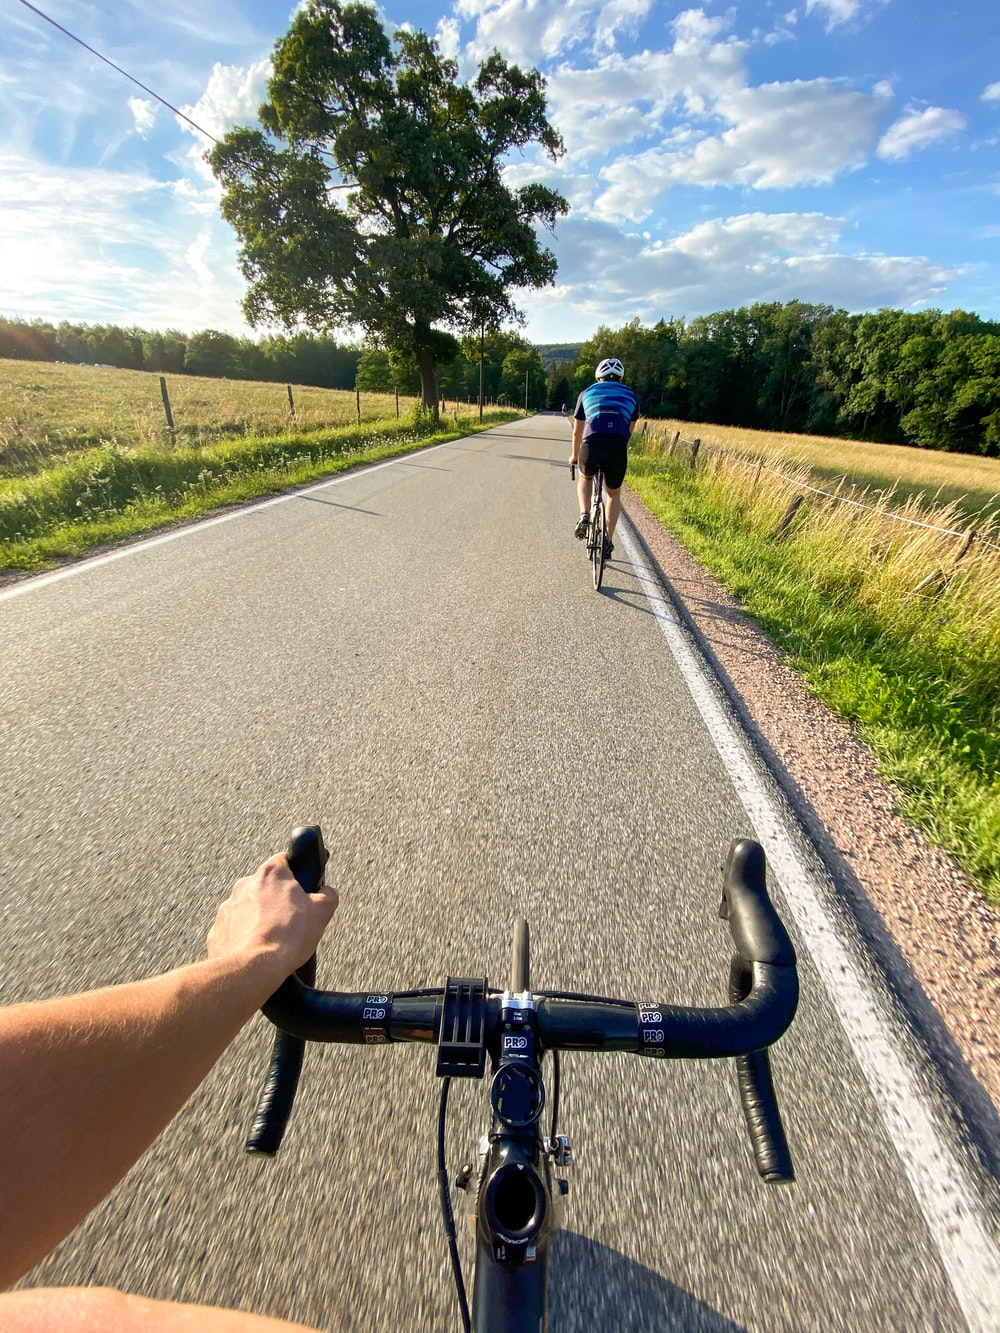 man in black t-shirt and blue denim jeans riding bicycle on road during daytime